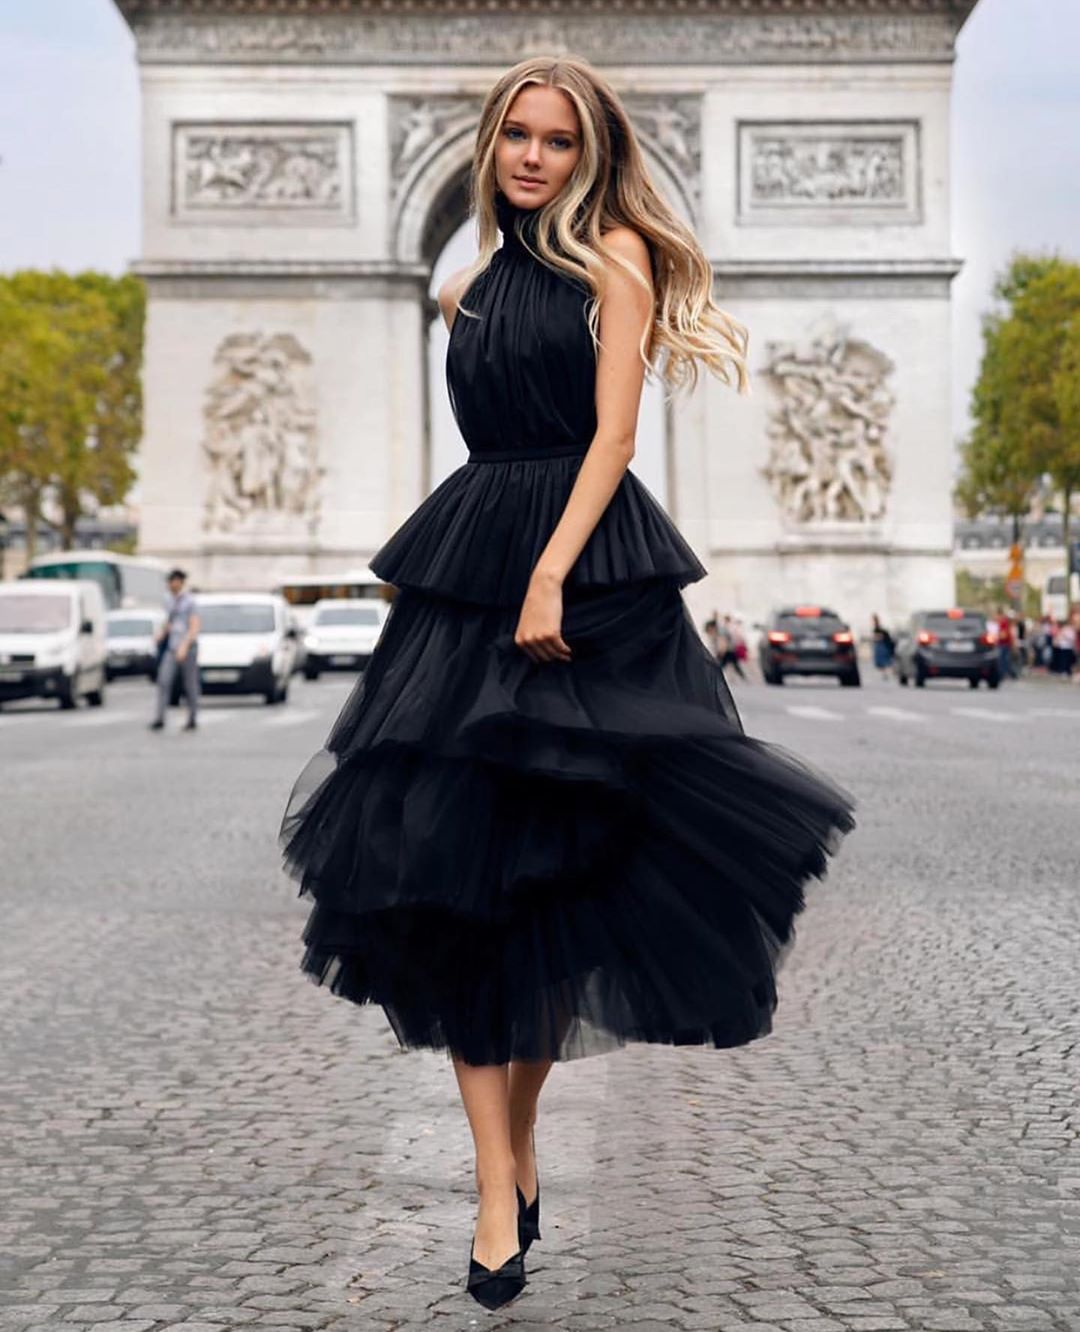 Black Tulle <font><b>Tea</b></font> <font><b>Length</b></font> <font><b>Prom</b></font> <font><b>Dress</b></font> Halter Tiered Sexy Open Back Women Formal Evening <font><b>Dresses</b></font> Long Special Occasion Party Gowns image